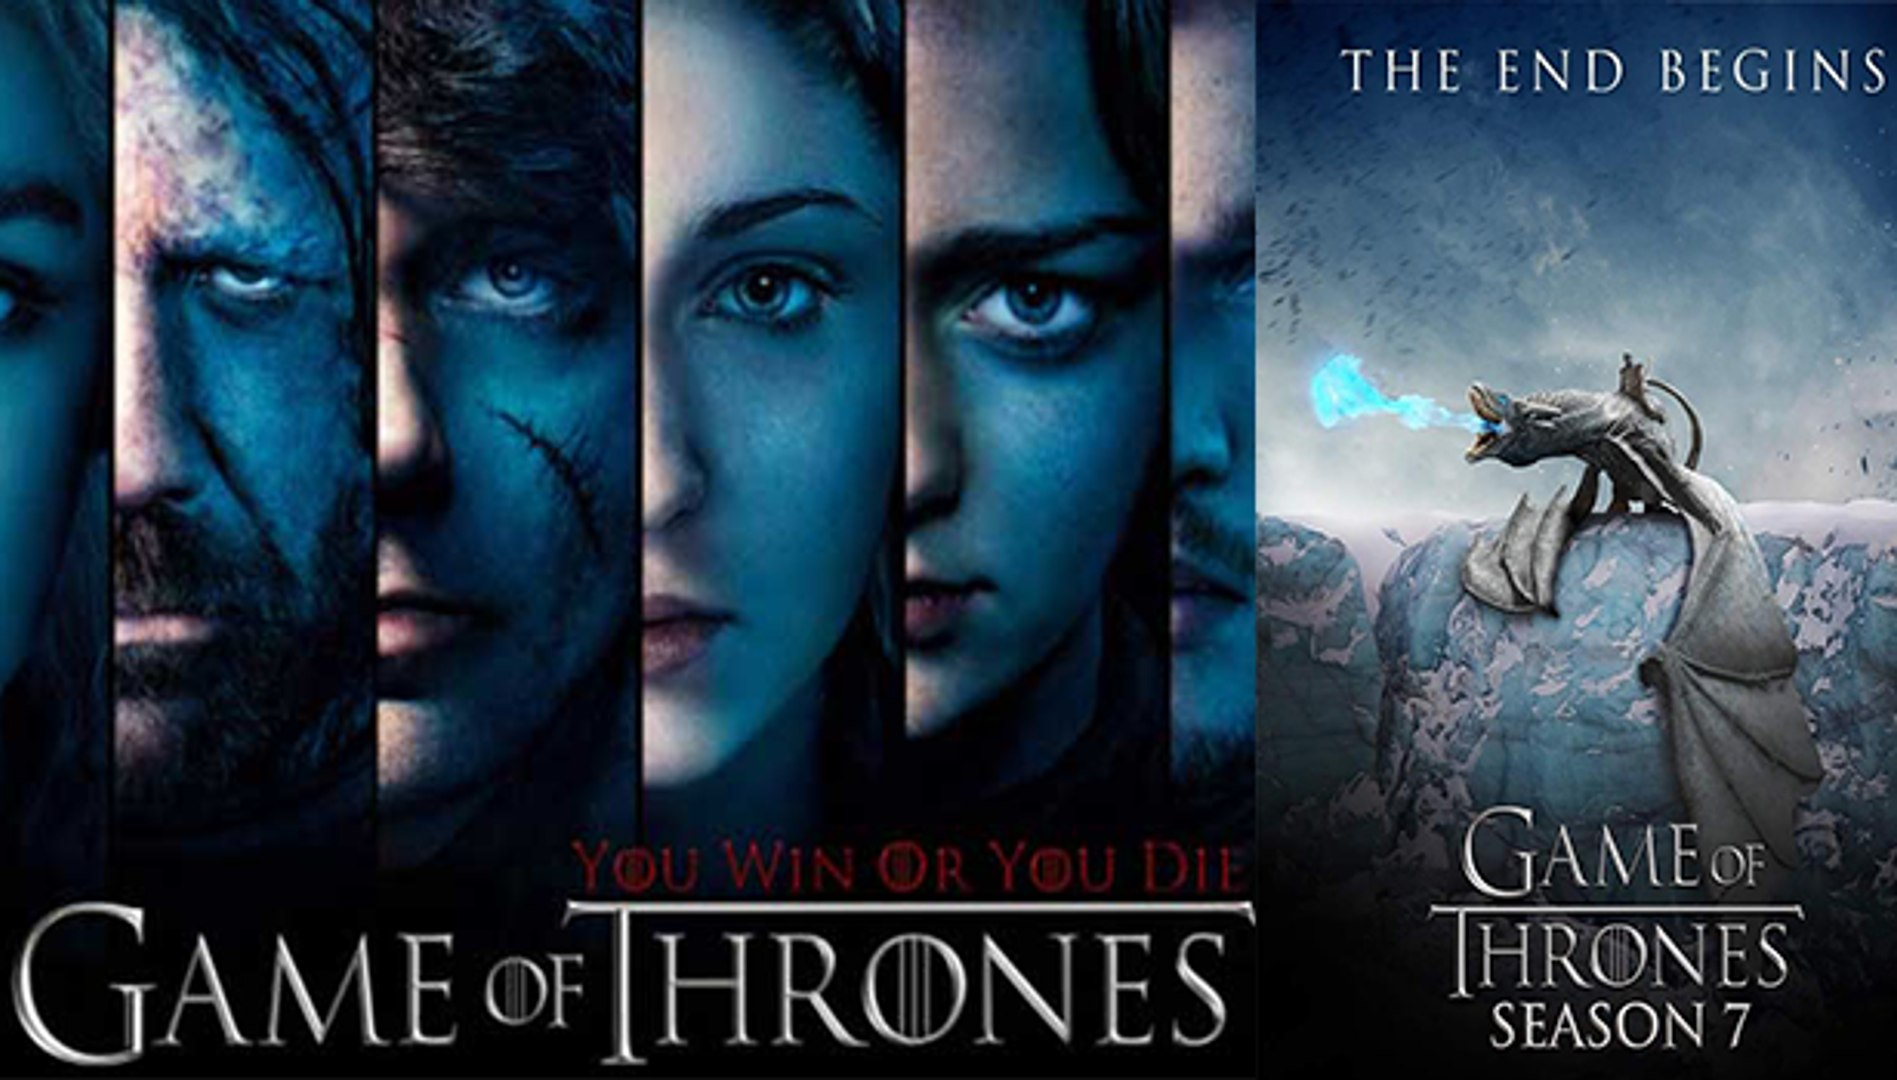 GOT S07E07 (Leaked Scenes !!) Game Of Thrones 7x07 Season 7 Episode 7 HD Online